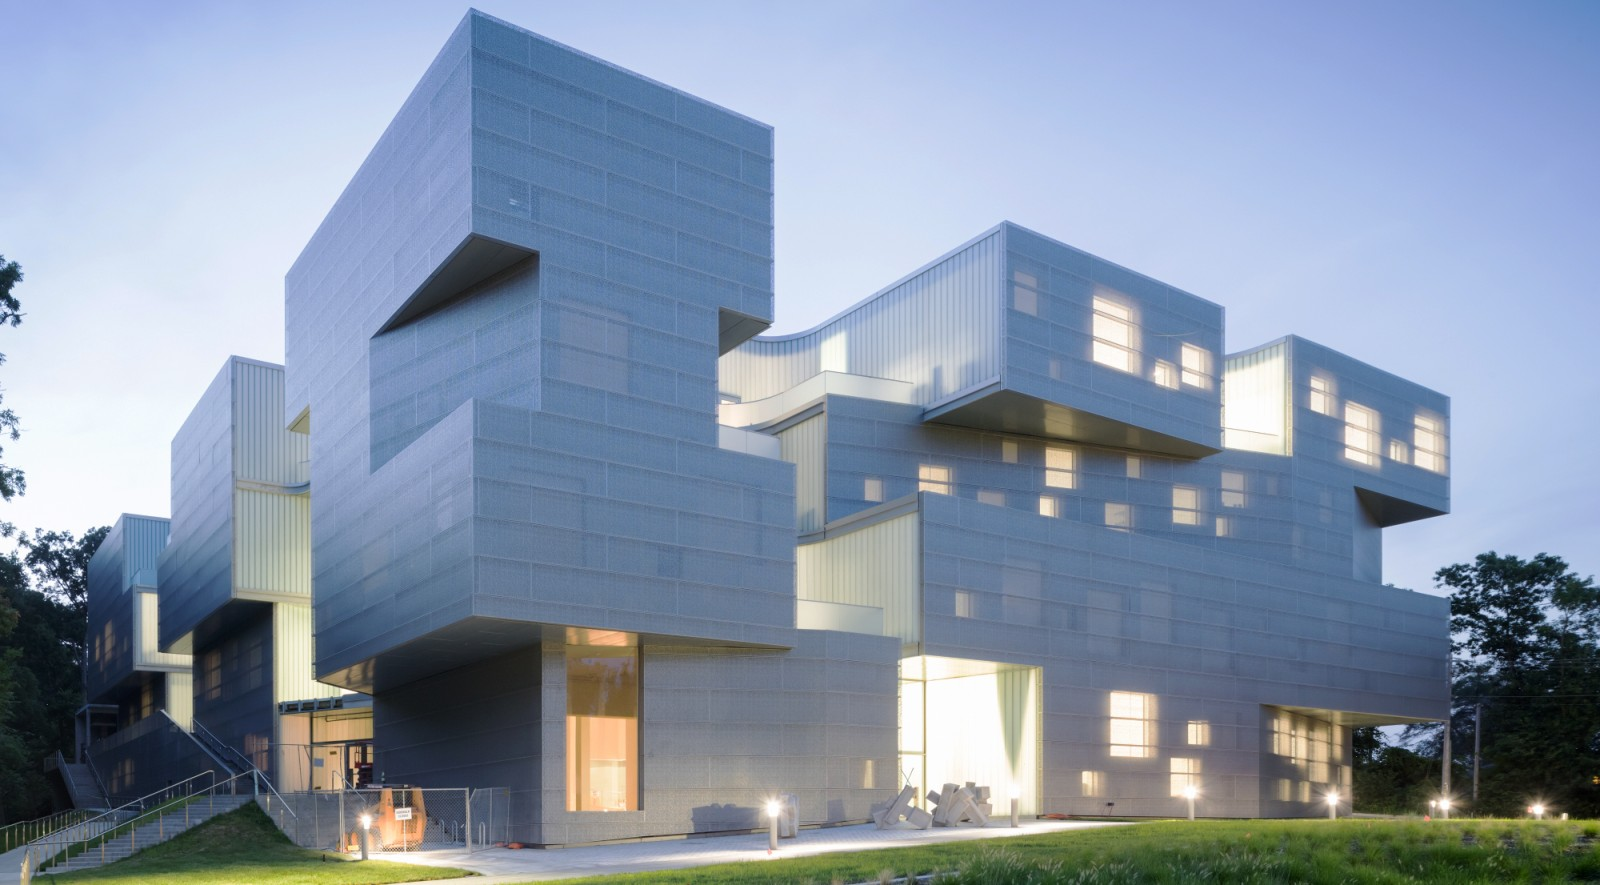 The visual arts building opens in october by steven holl for Art architectural